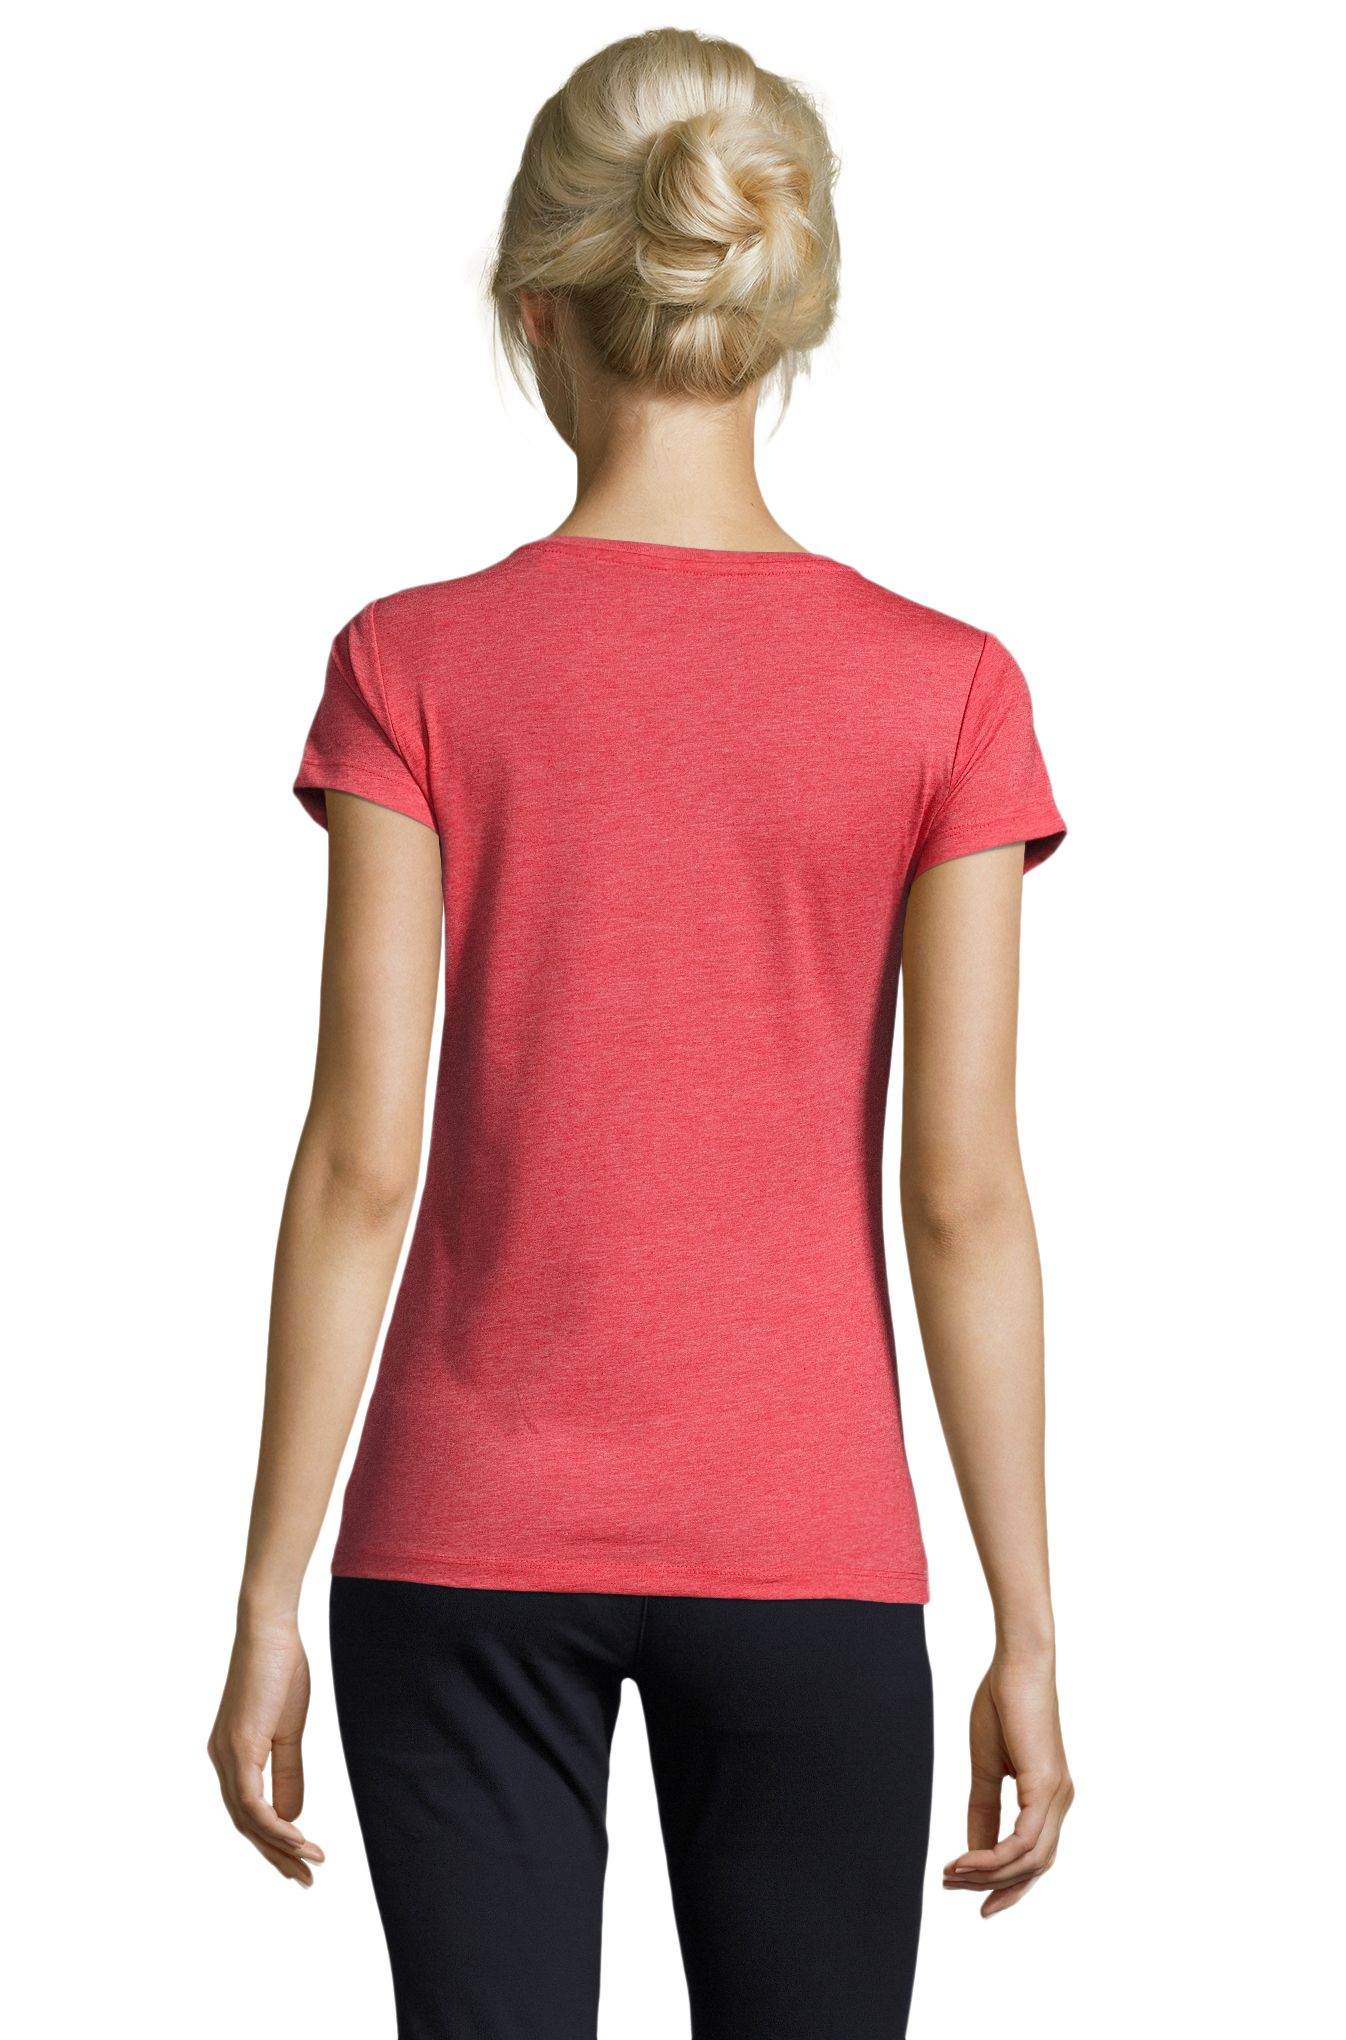 163 - Heather red